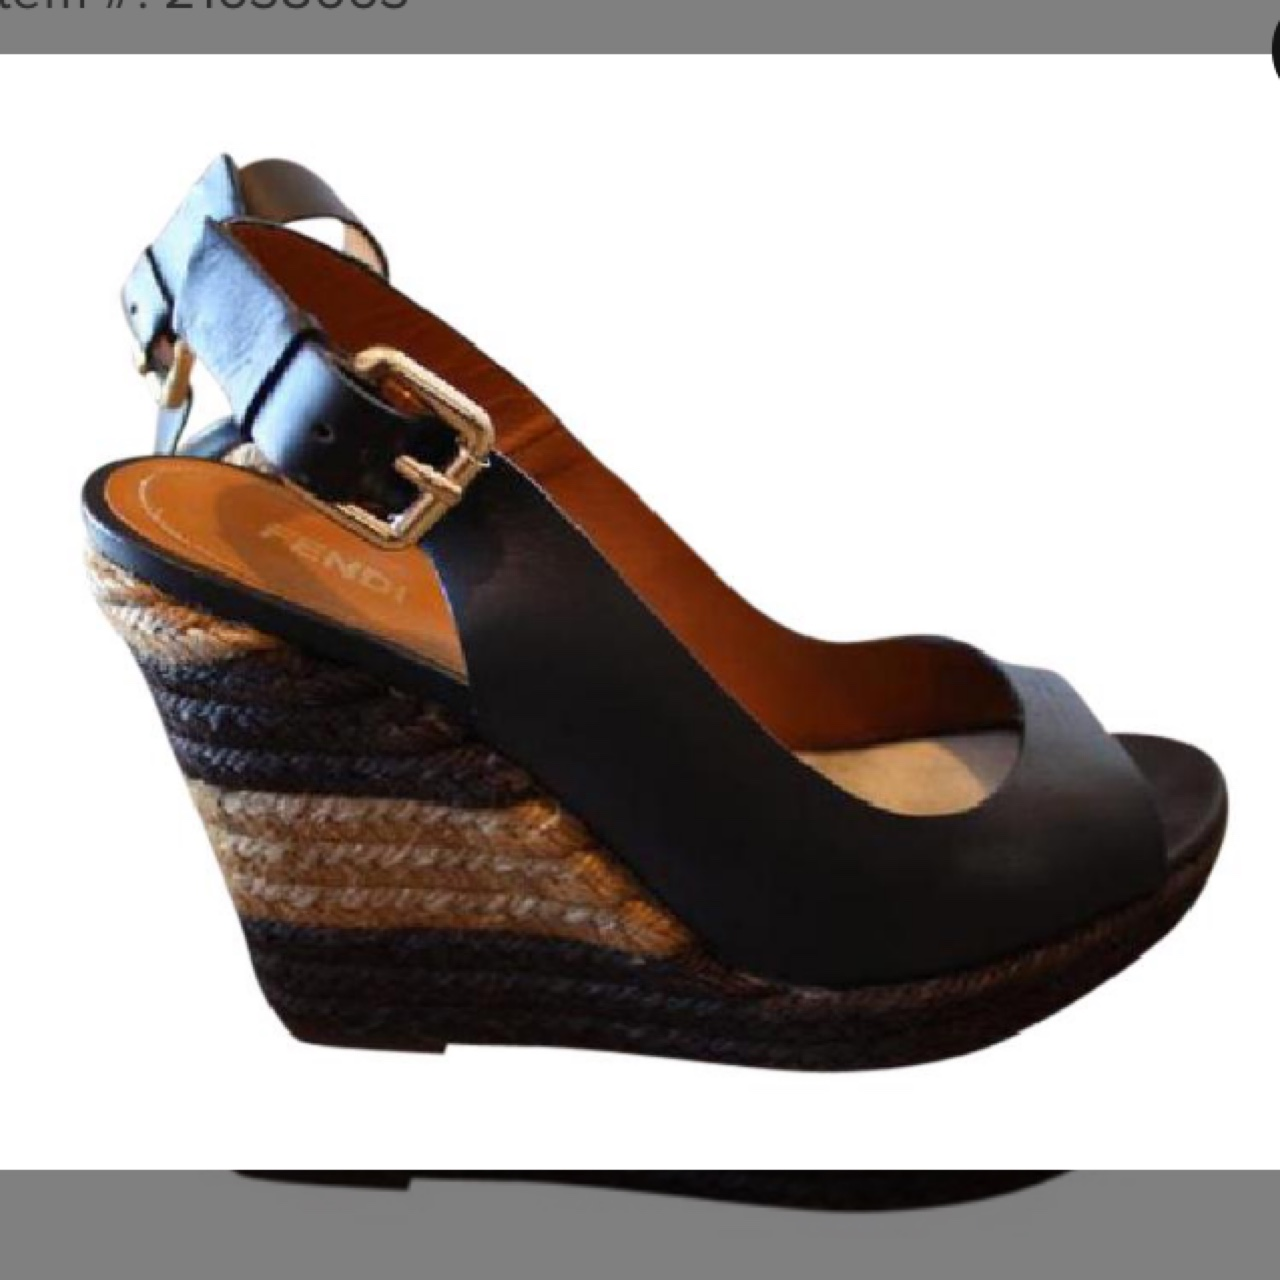 on feet shots of lowest price outlet online AUTHENTIC FENDI Shoes Wedges Black/Brown Espadrille... - Depop